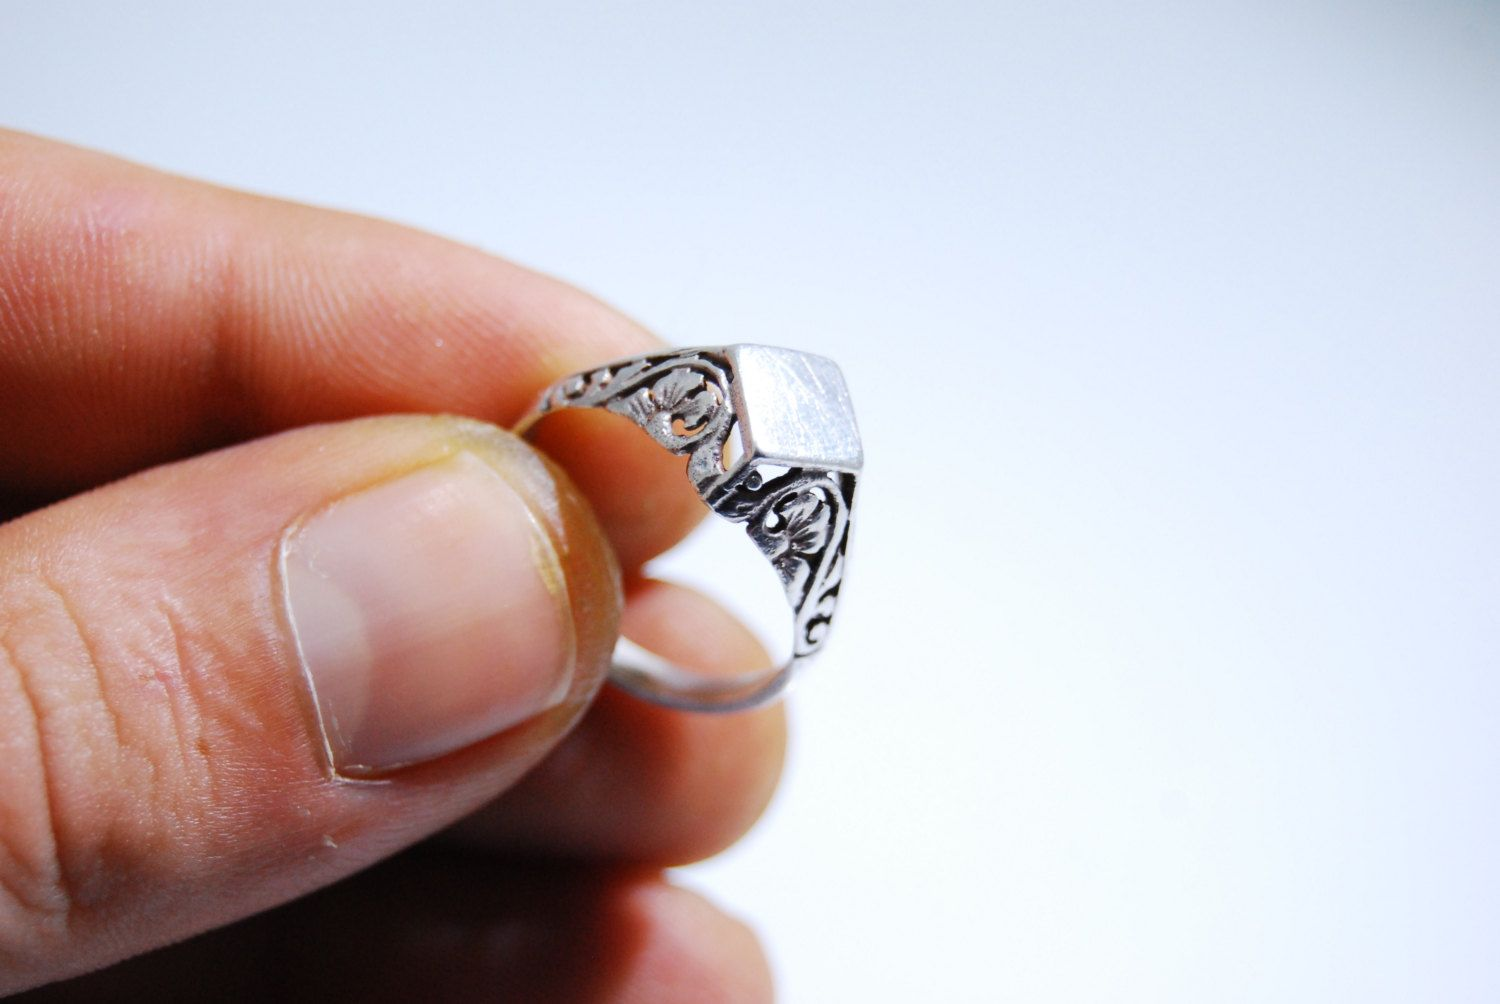 Free Shipping SR507 Vintage Estate Sterling Silver Delicate Filigree Ring 925 Us Size 7.5 Jewelry Jewellery, gift for her by RusticHomeDeco on Etsy